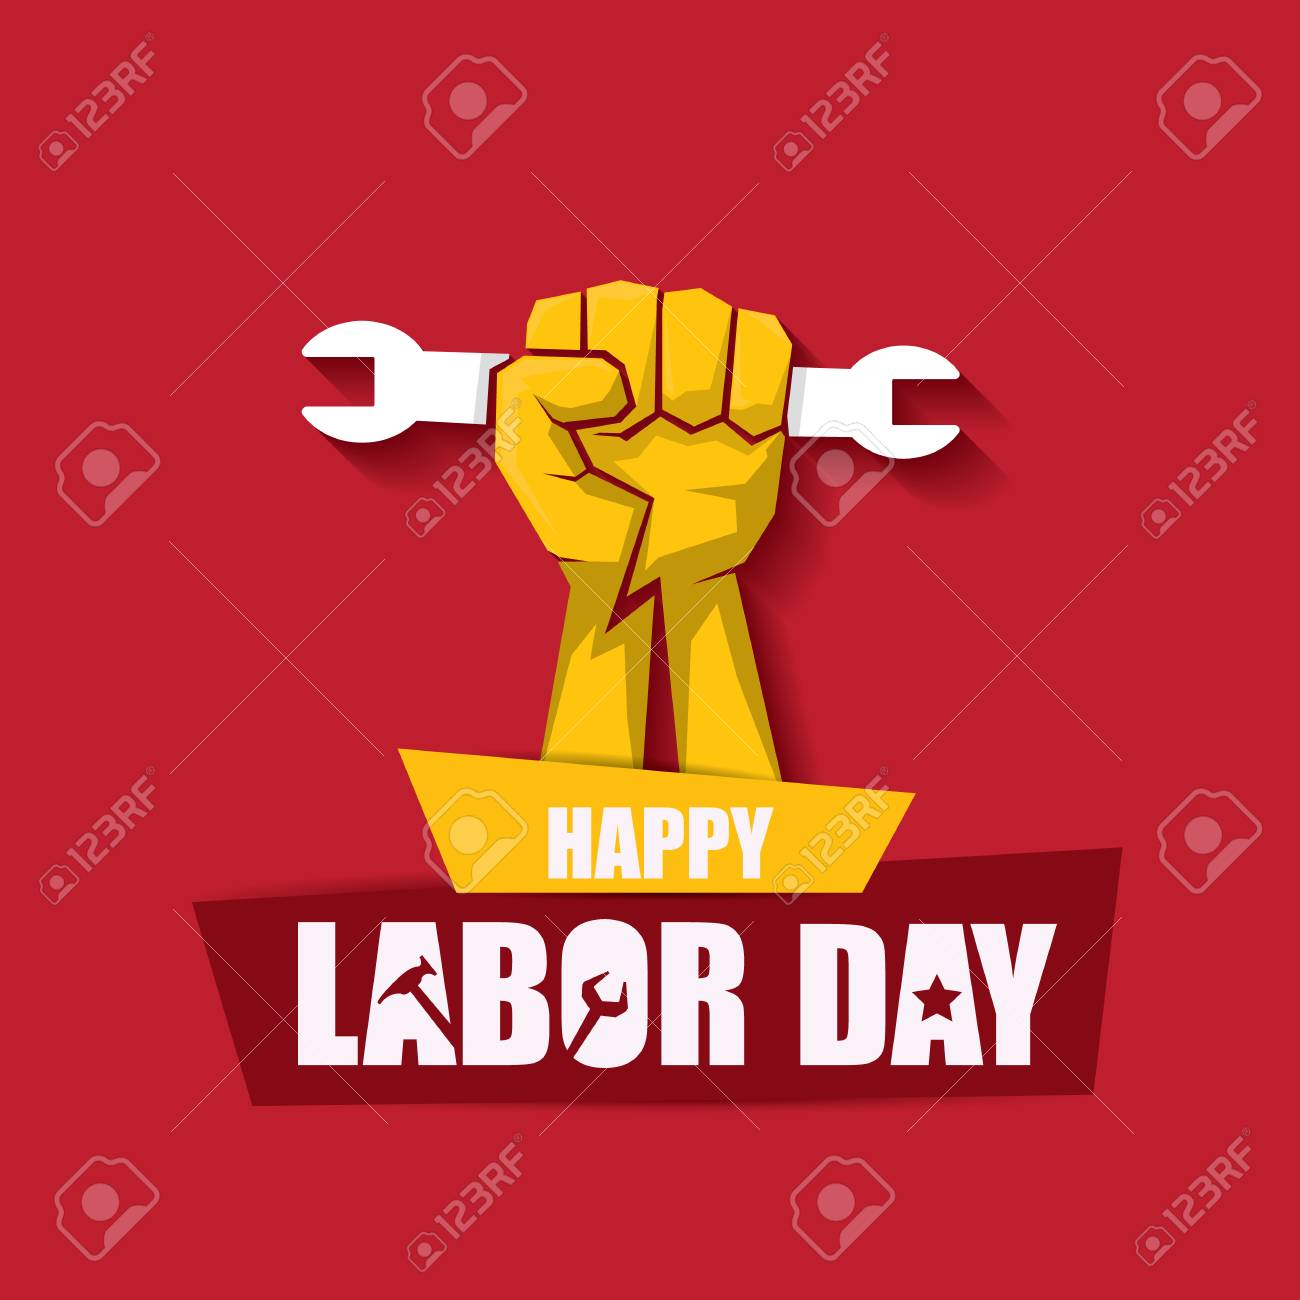 labor day Usa vector label or banner background. vector happy labor day poster or banner with clenched fist isolated on red . Labor union icon - 105482530